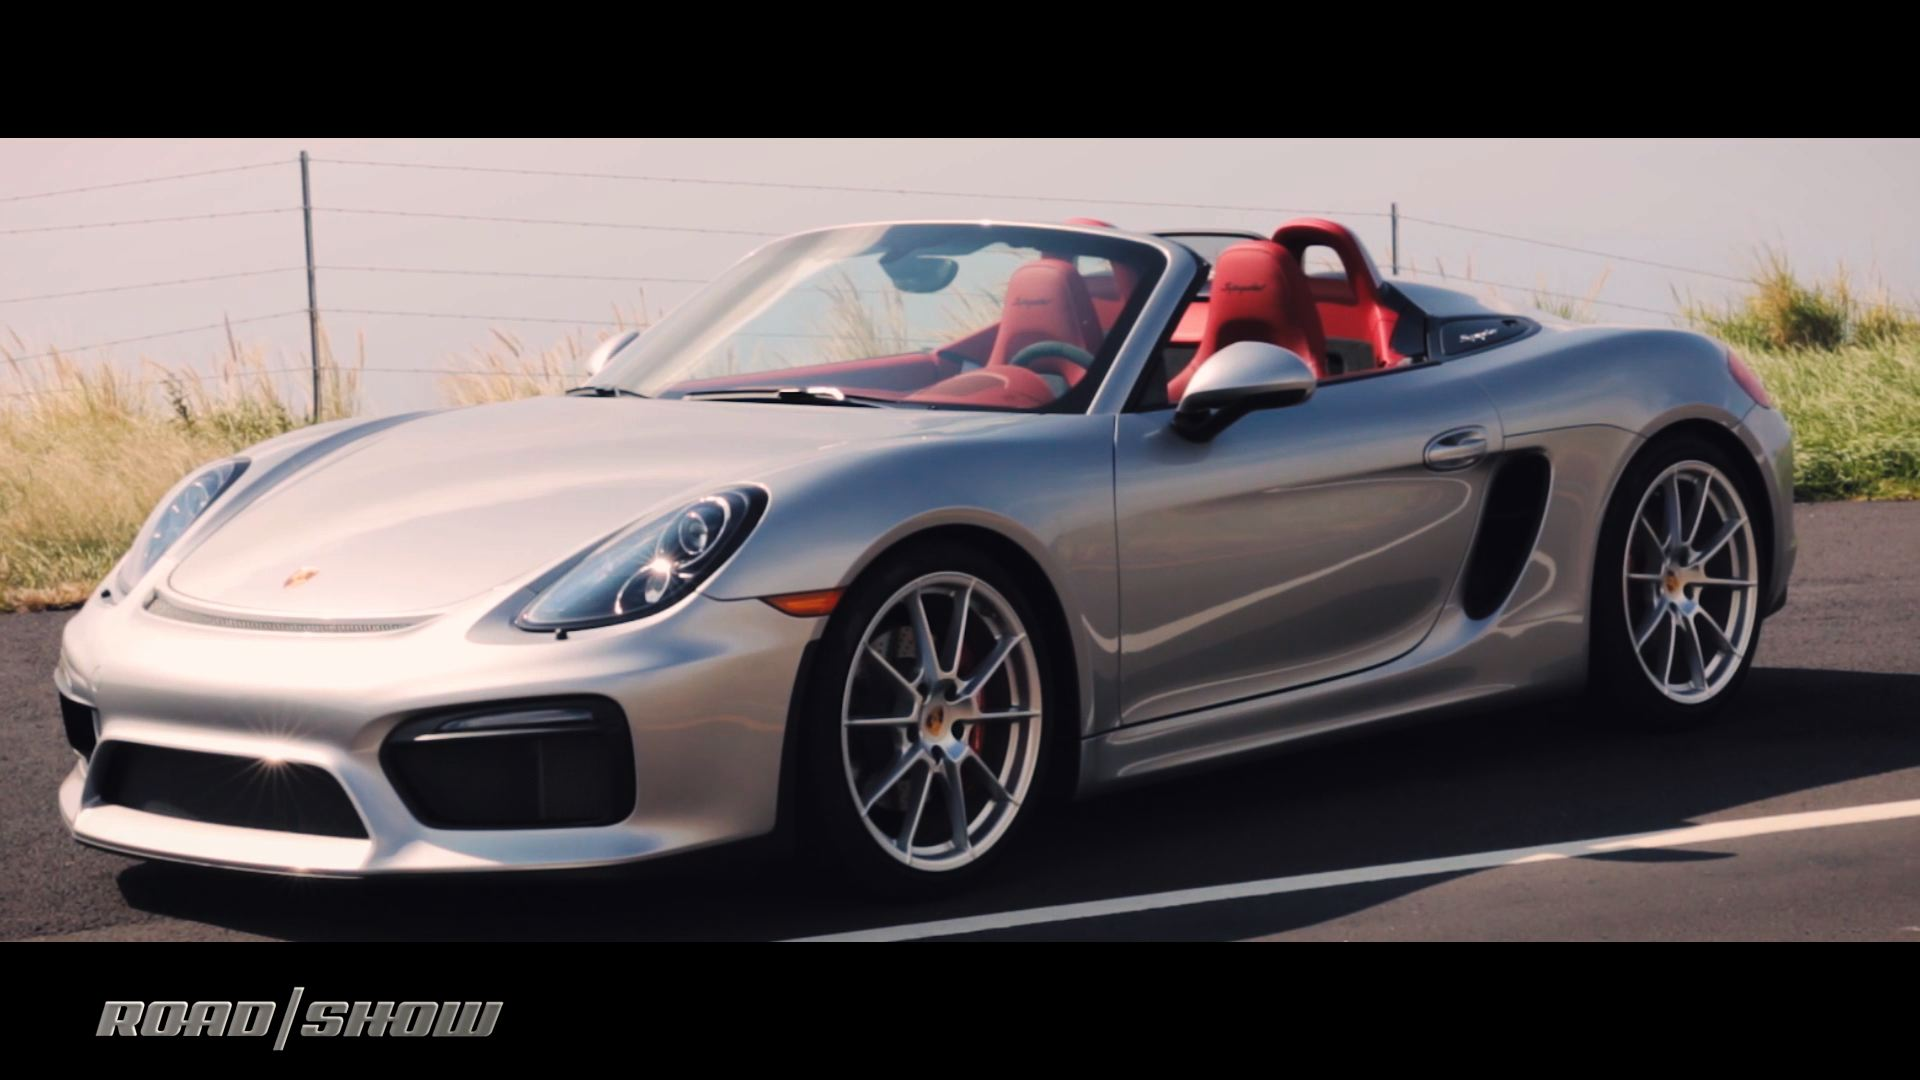 Video: 2016 Porsche Boxster Spyder is one hell of an arachnid